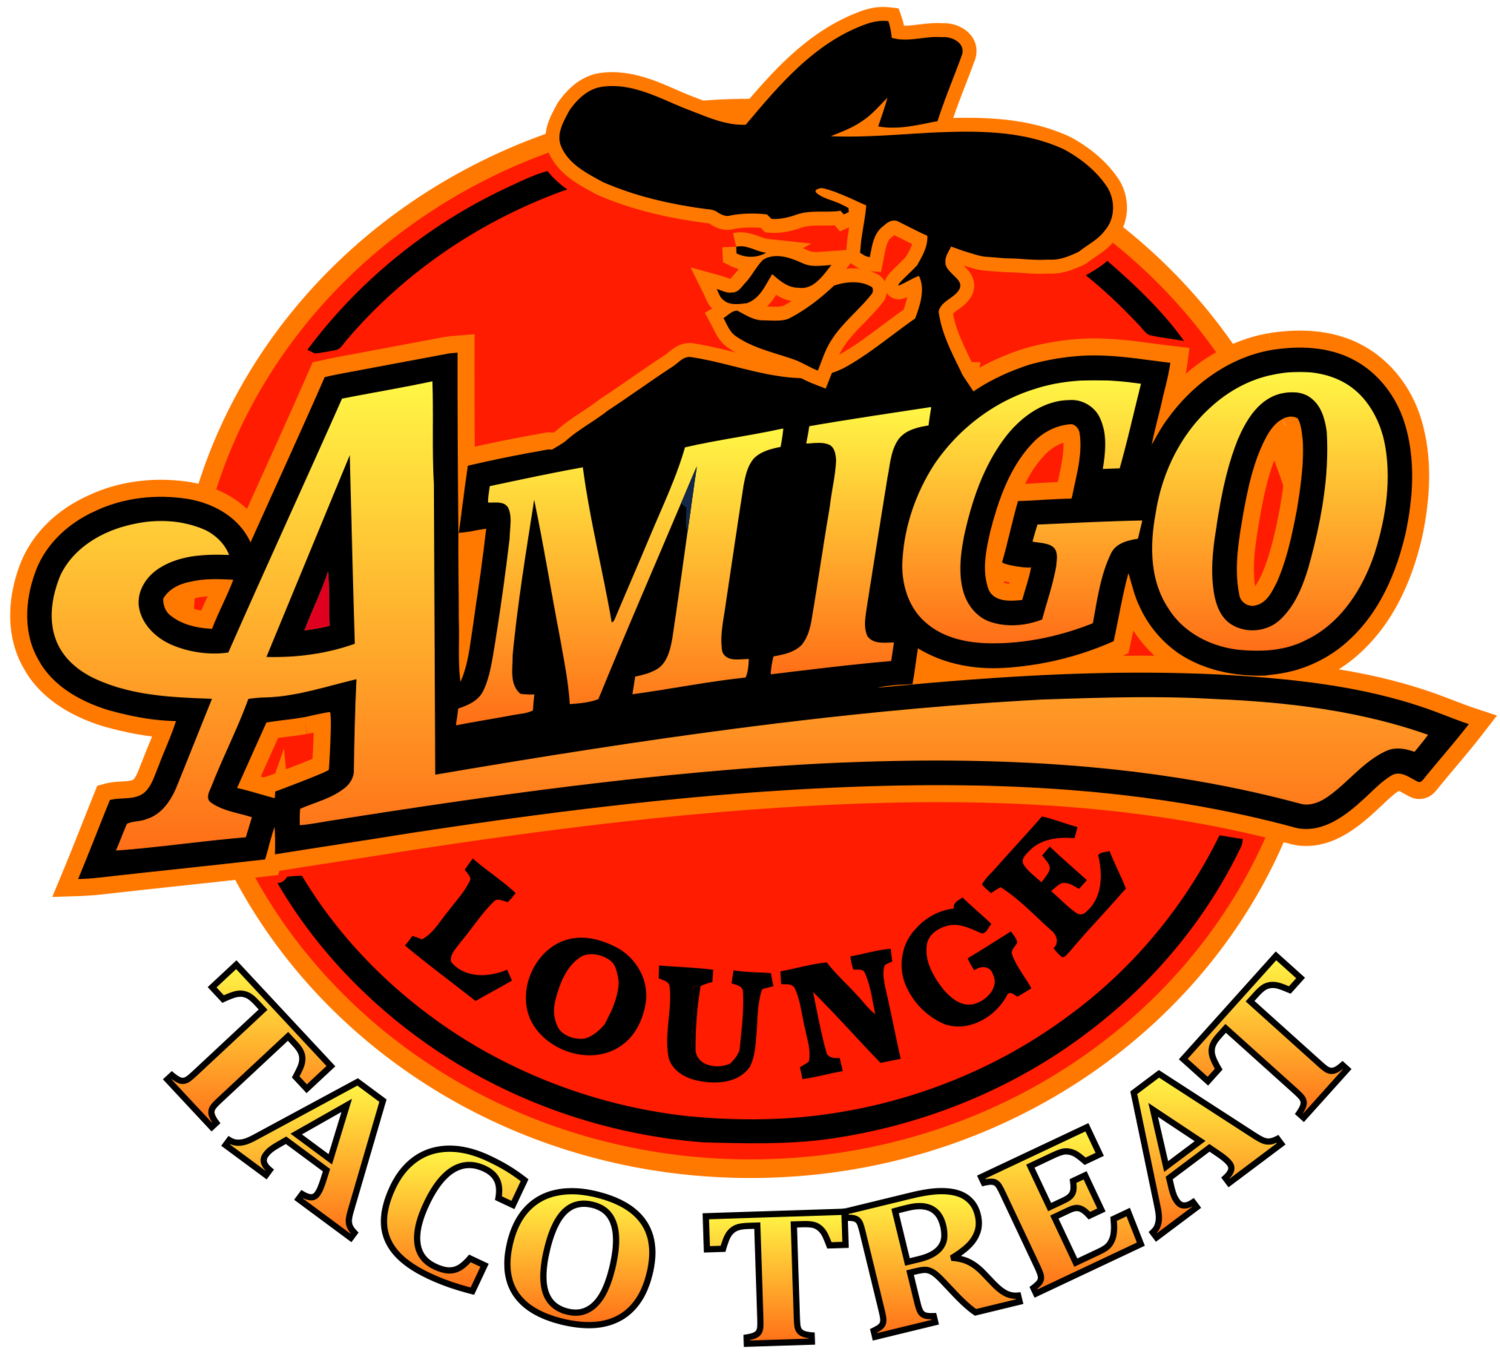 Amigo Lounge Taco Treat